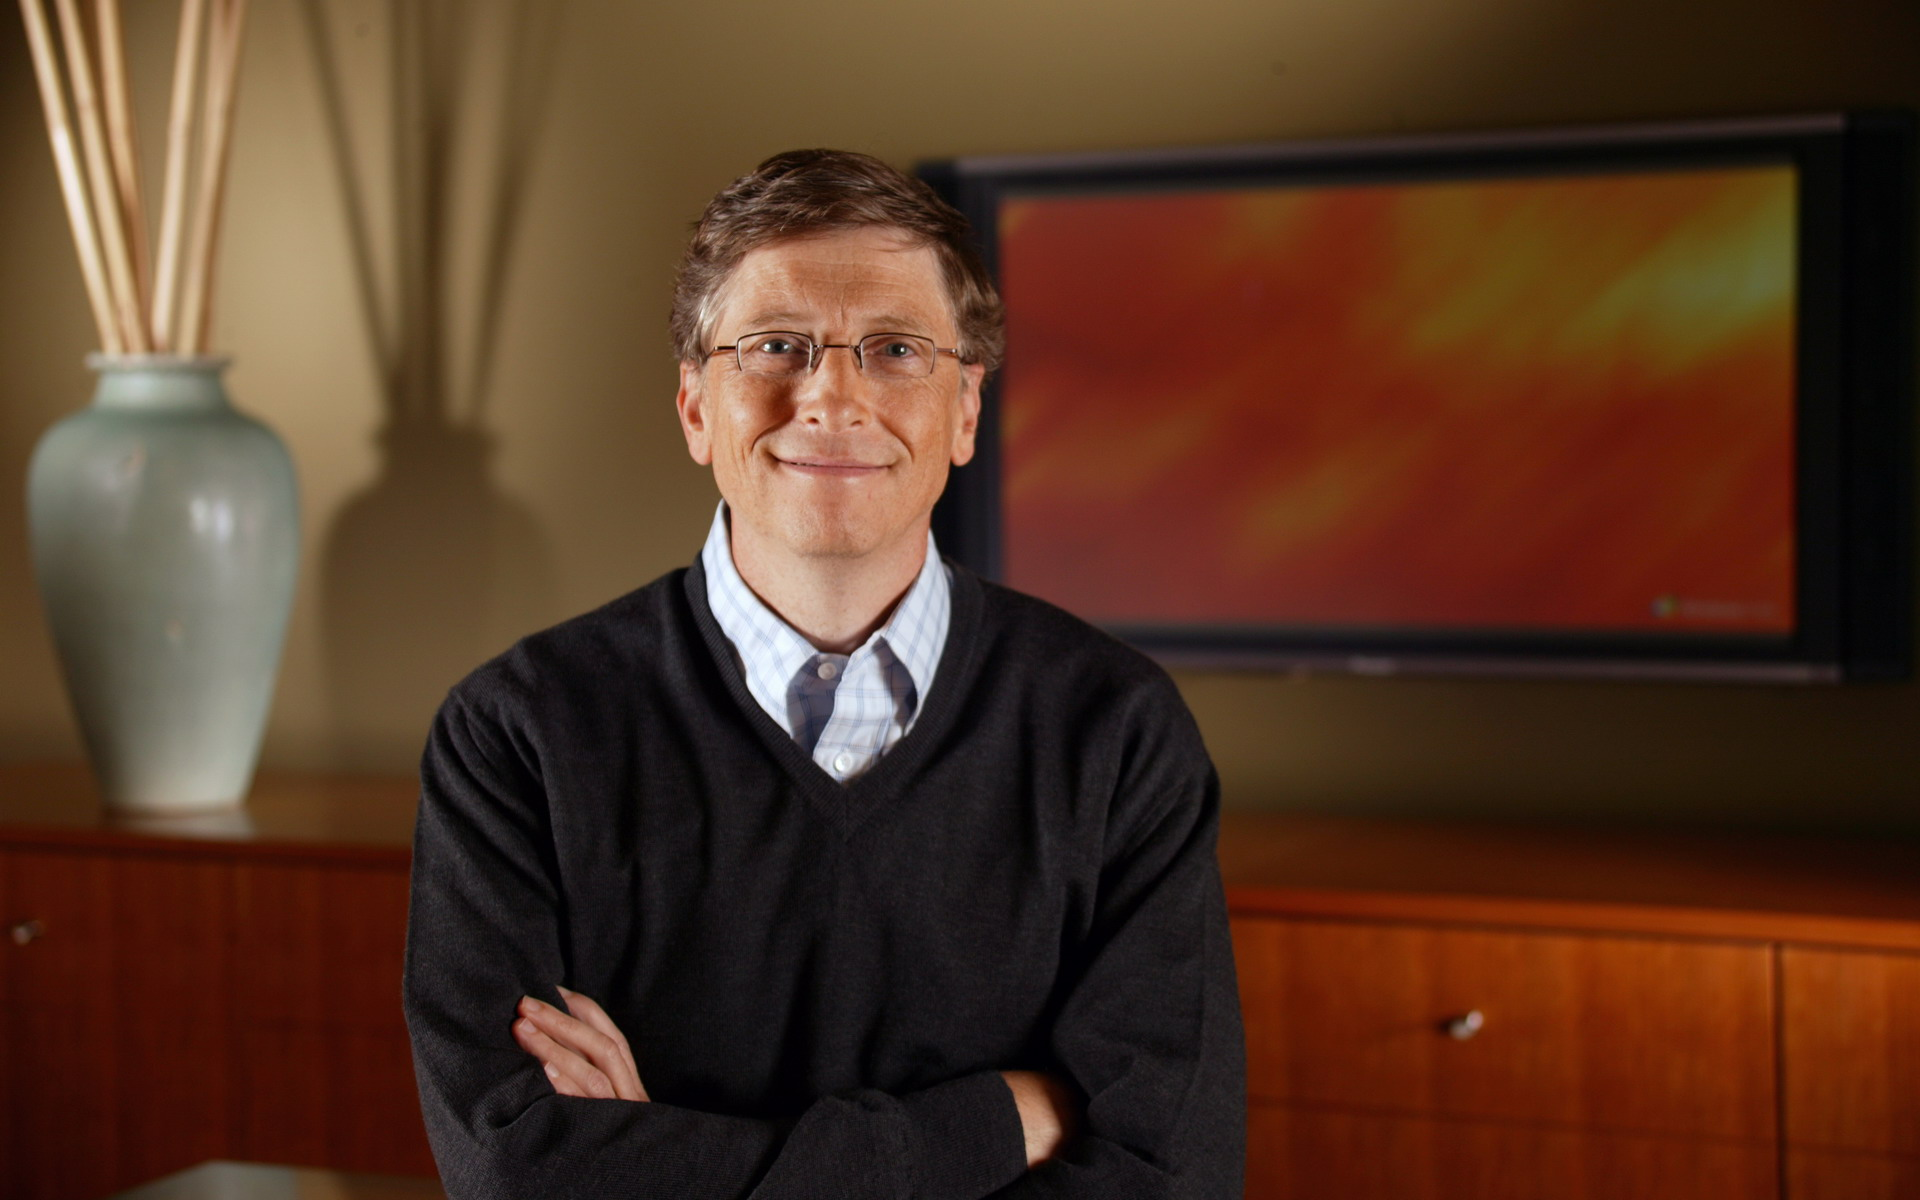 Bill Gates Wallpaper Wallpaper